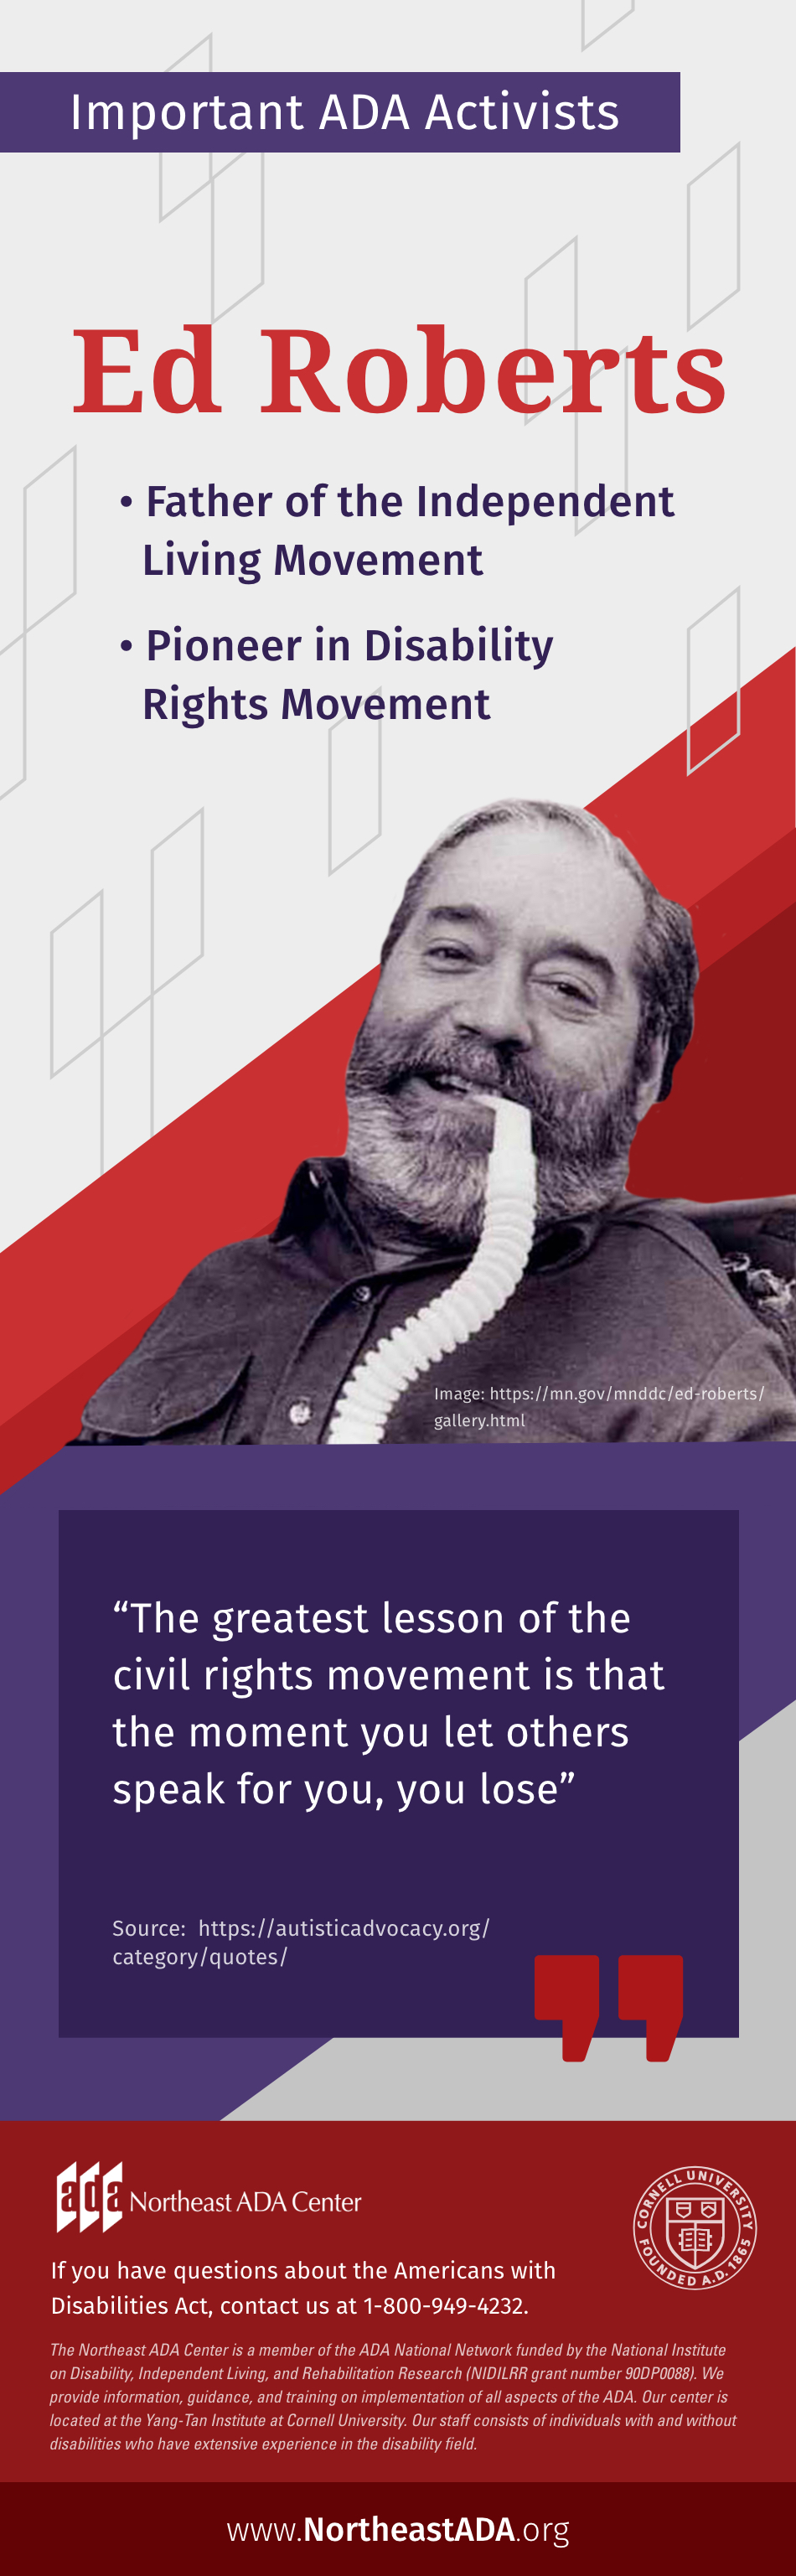 Infographic titled 'Important ADA Activists: Ed Roberts'.